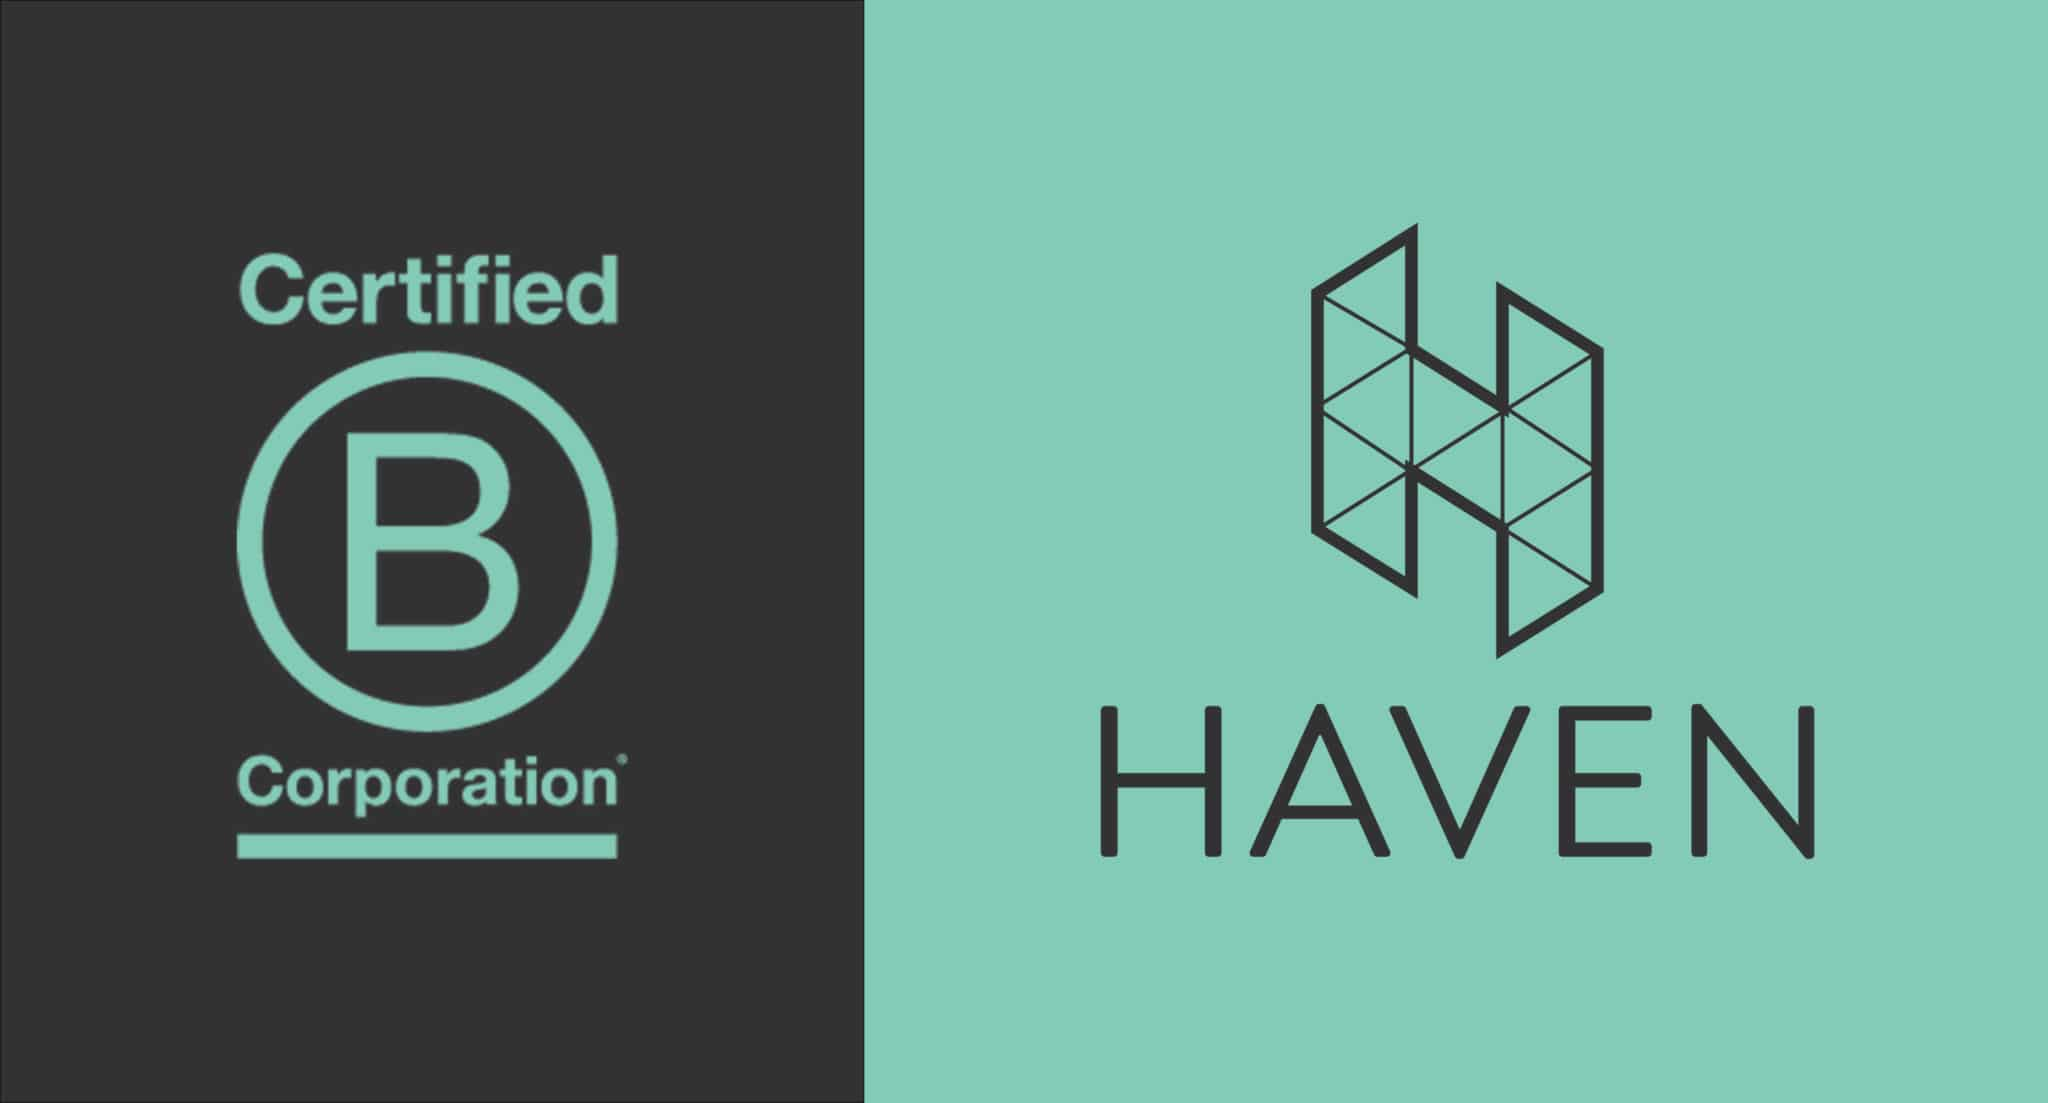 Haven is a Certified B Corp